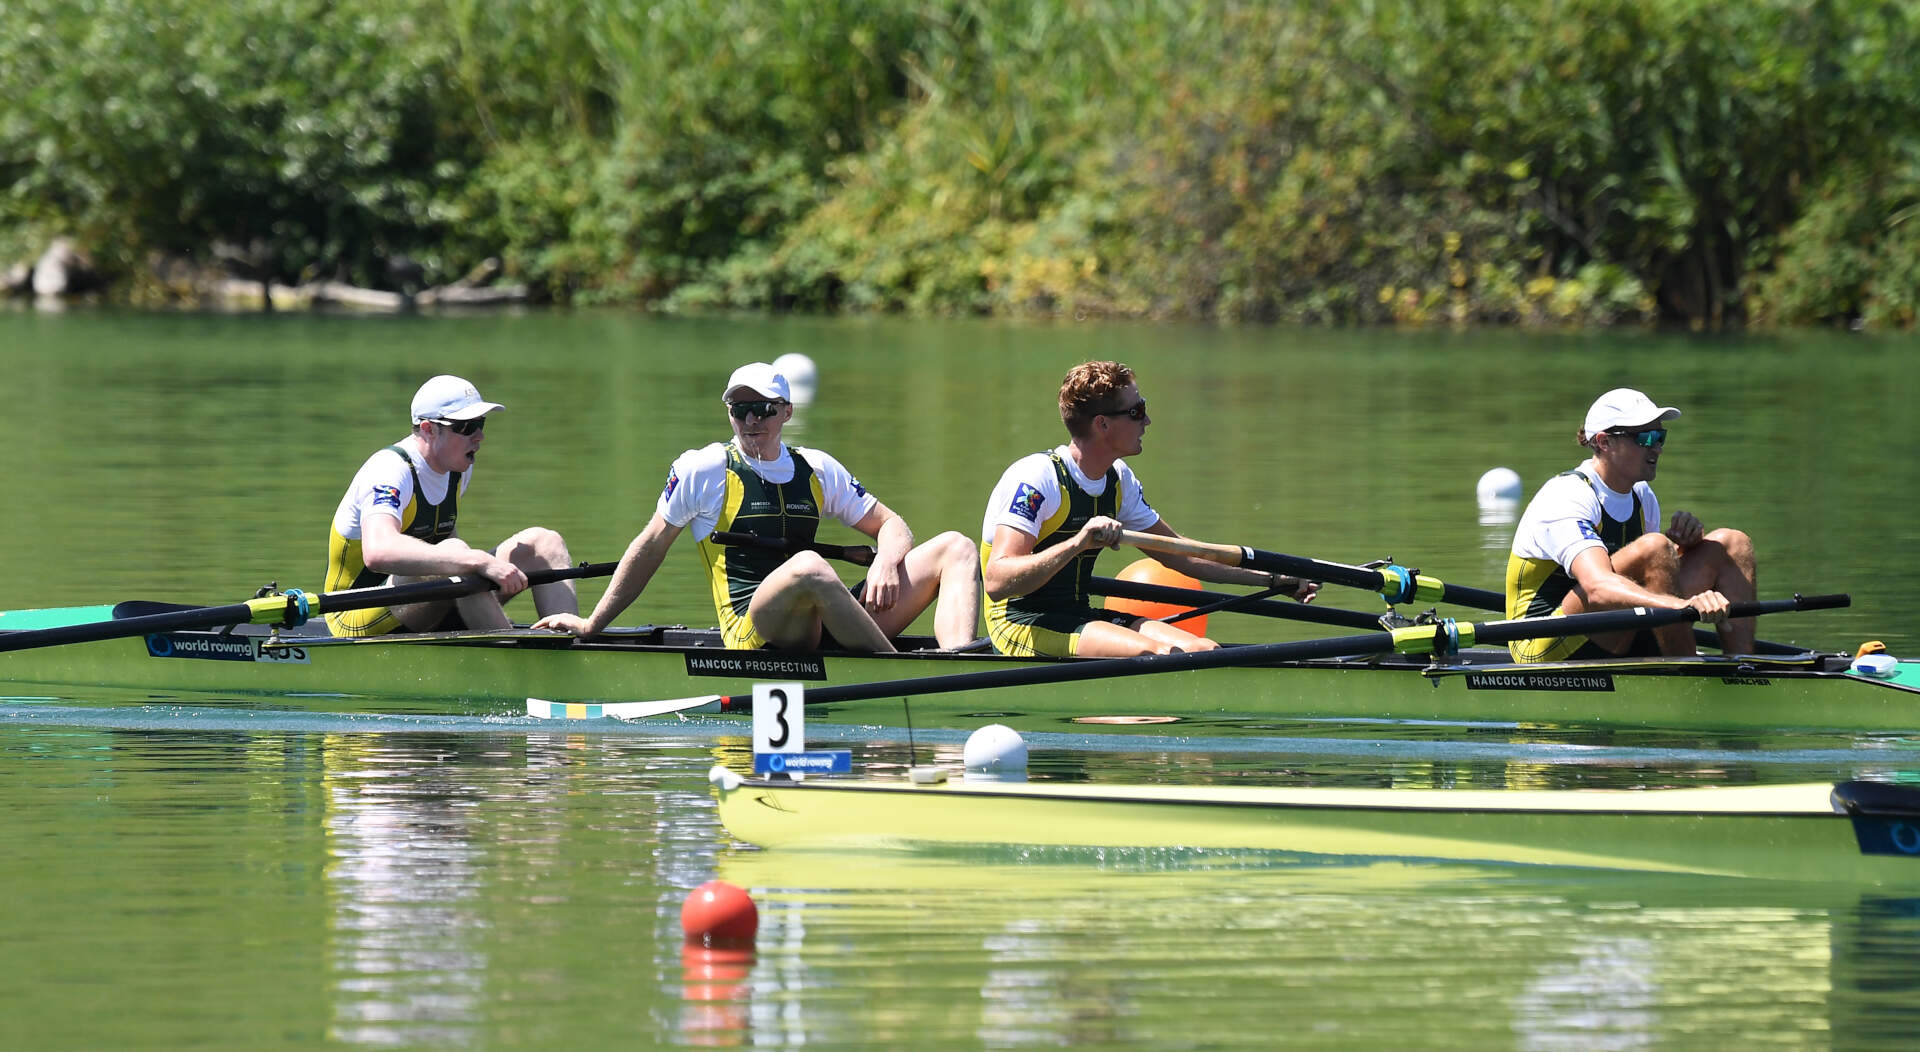 World Rowing Cup III Luzern M4 Gold AUS